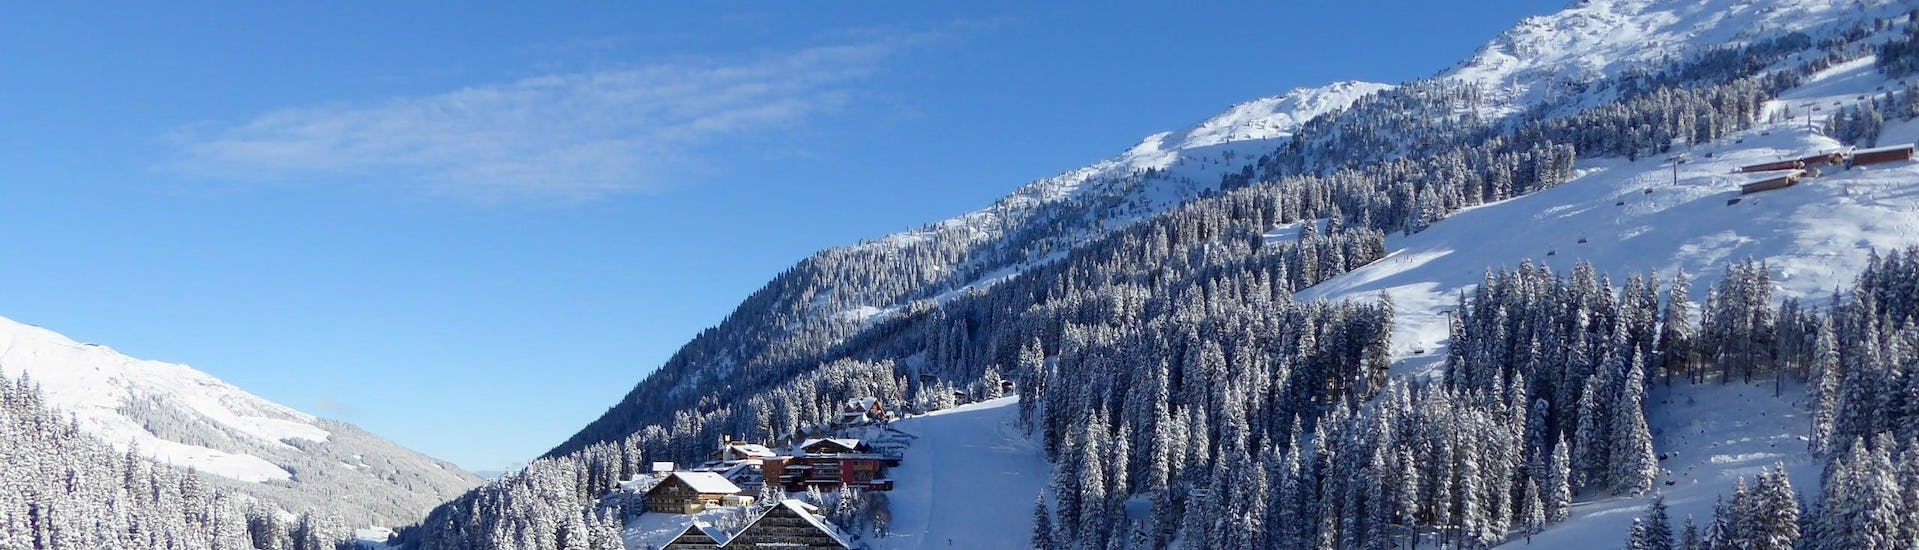 View over the sunny mountain landscape while learning to ski with the ski schools in Hochfügen.